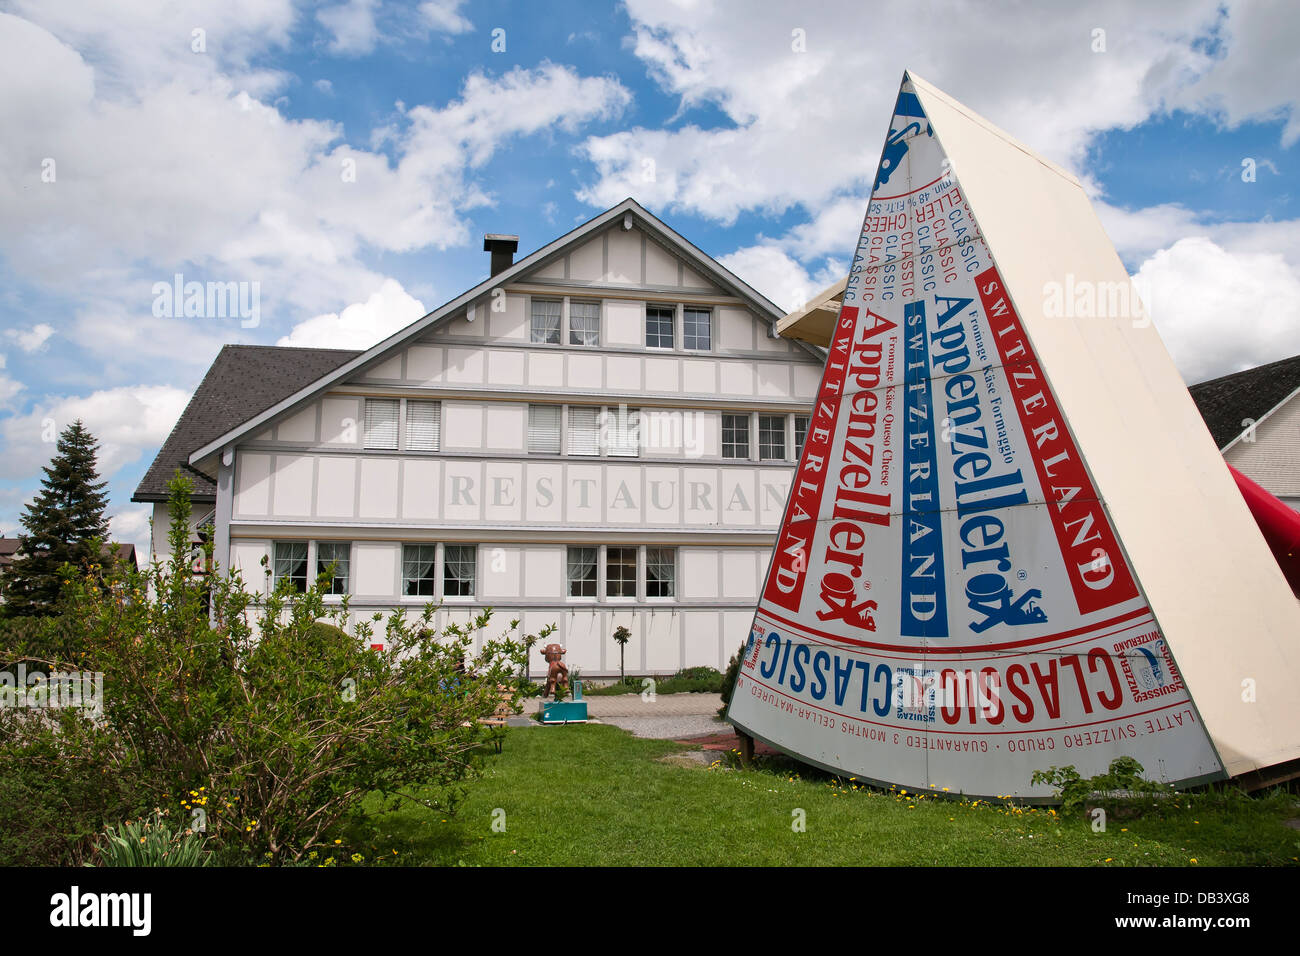 Stand-up ads cheese and restaurant building of Cheese factory, Stein, Appenzell region, Switzerland - Stock Image